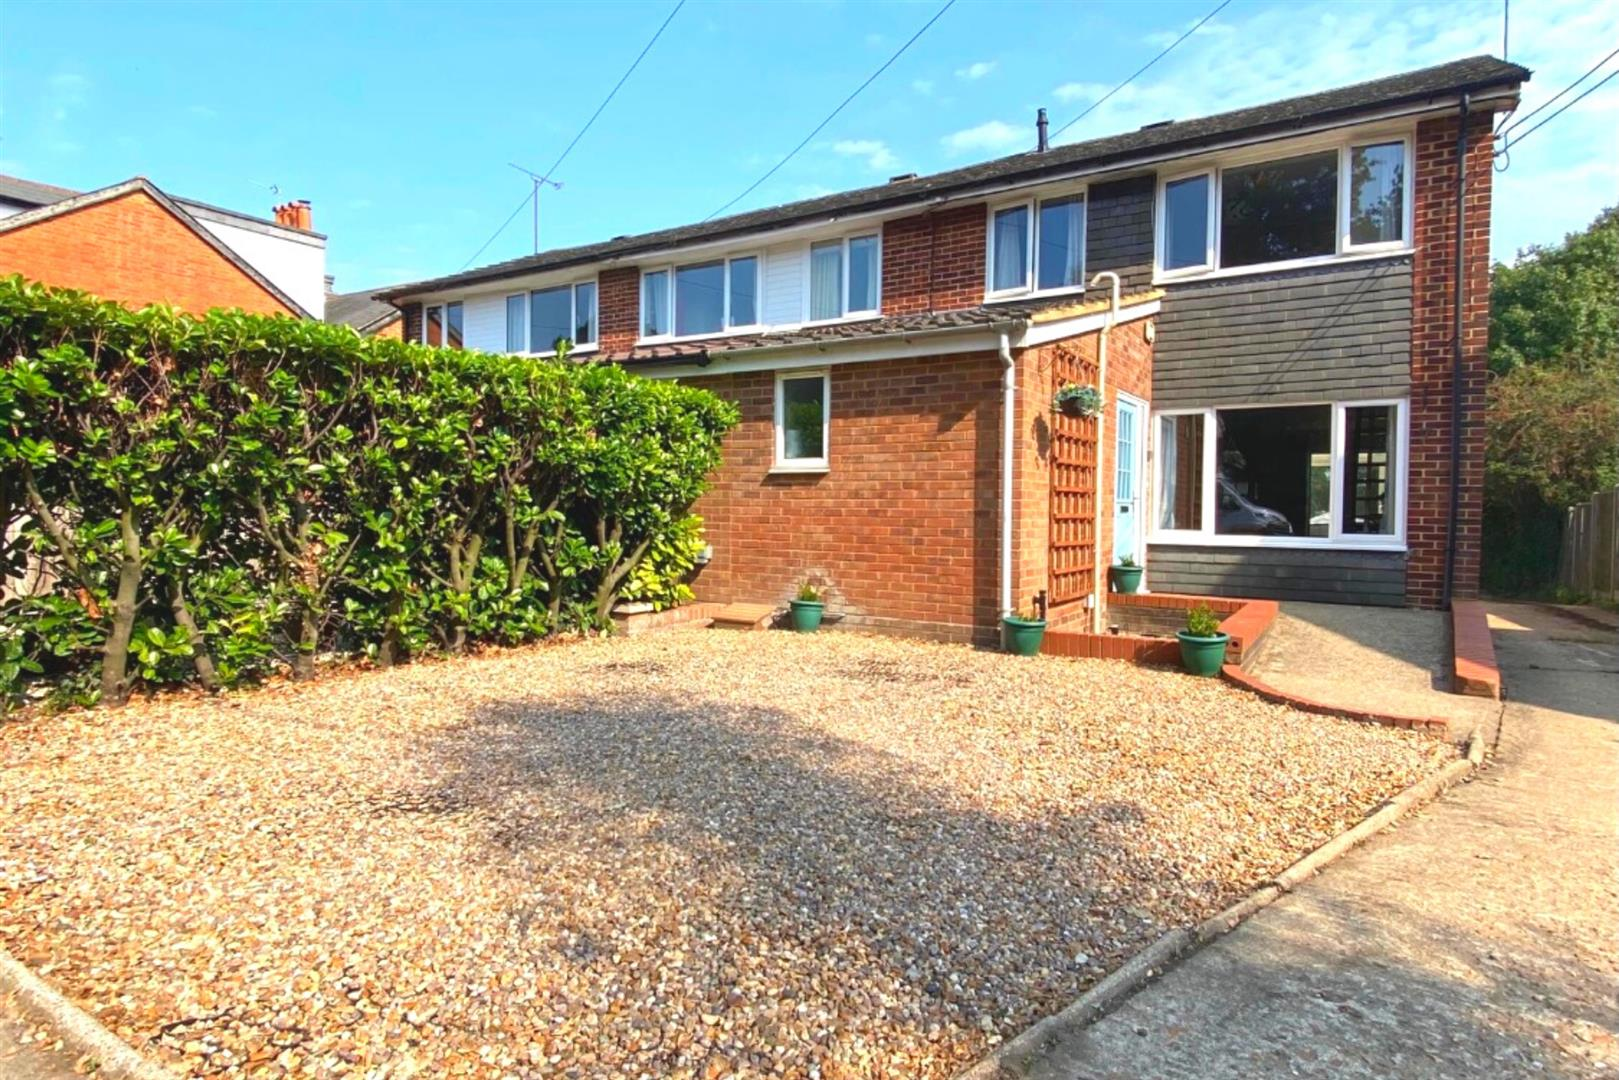 3 bed end of terrace for sale in Arborfield Cross - Property Image 1